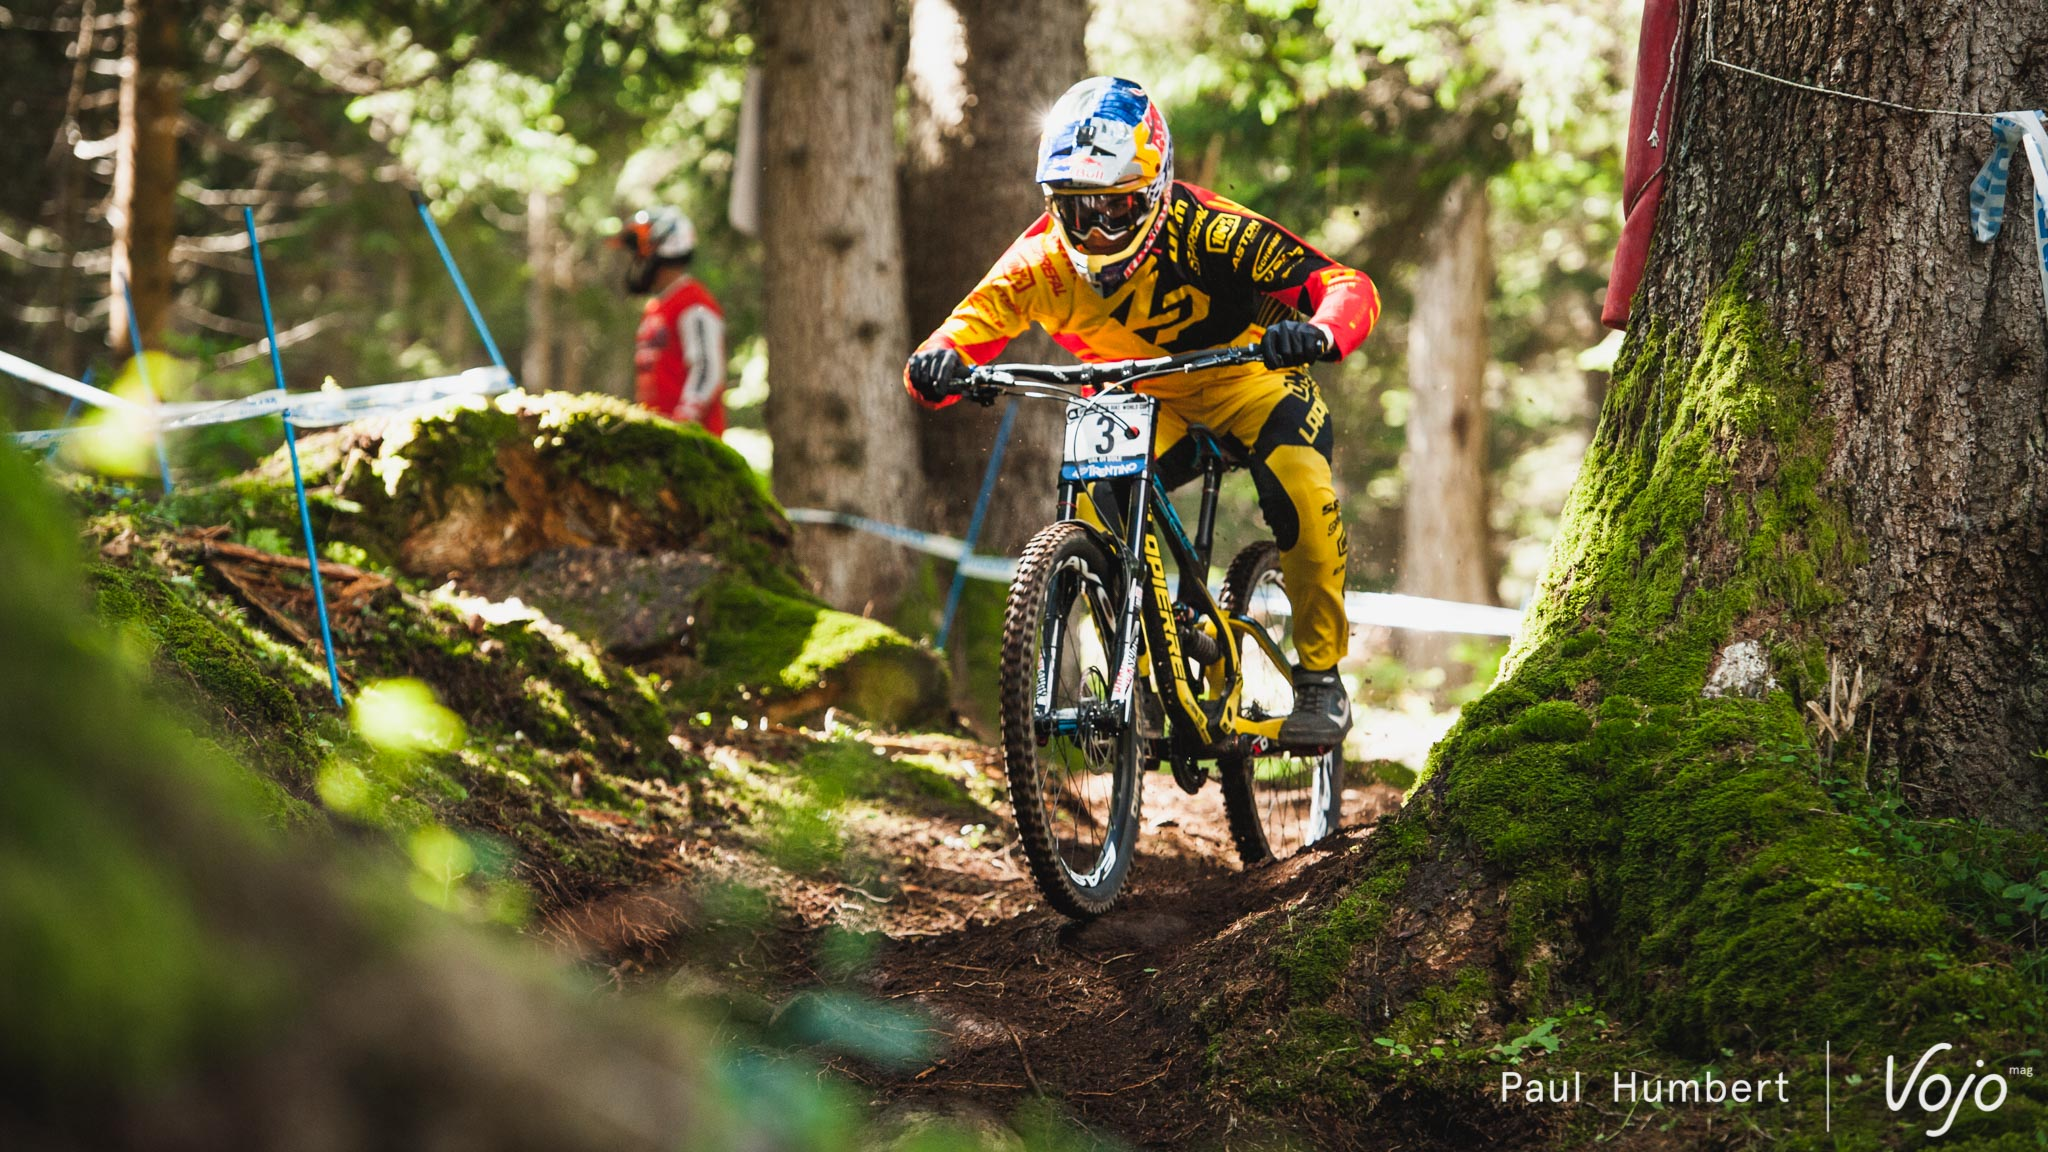 WC-valdisole-qualifications-vojo-paul-humbert-2